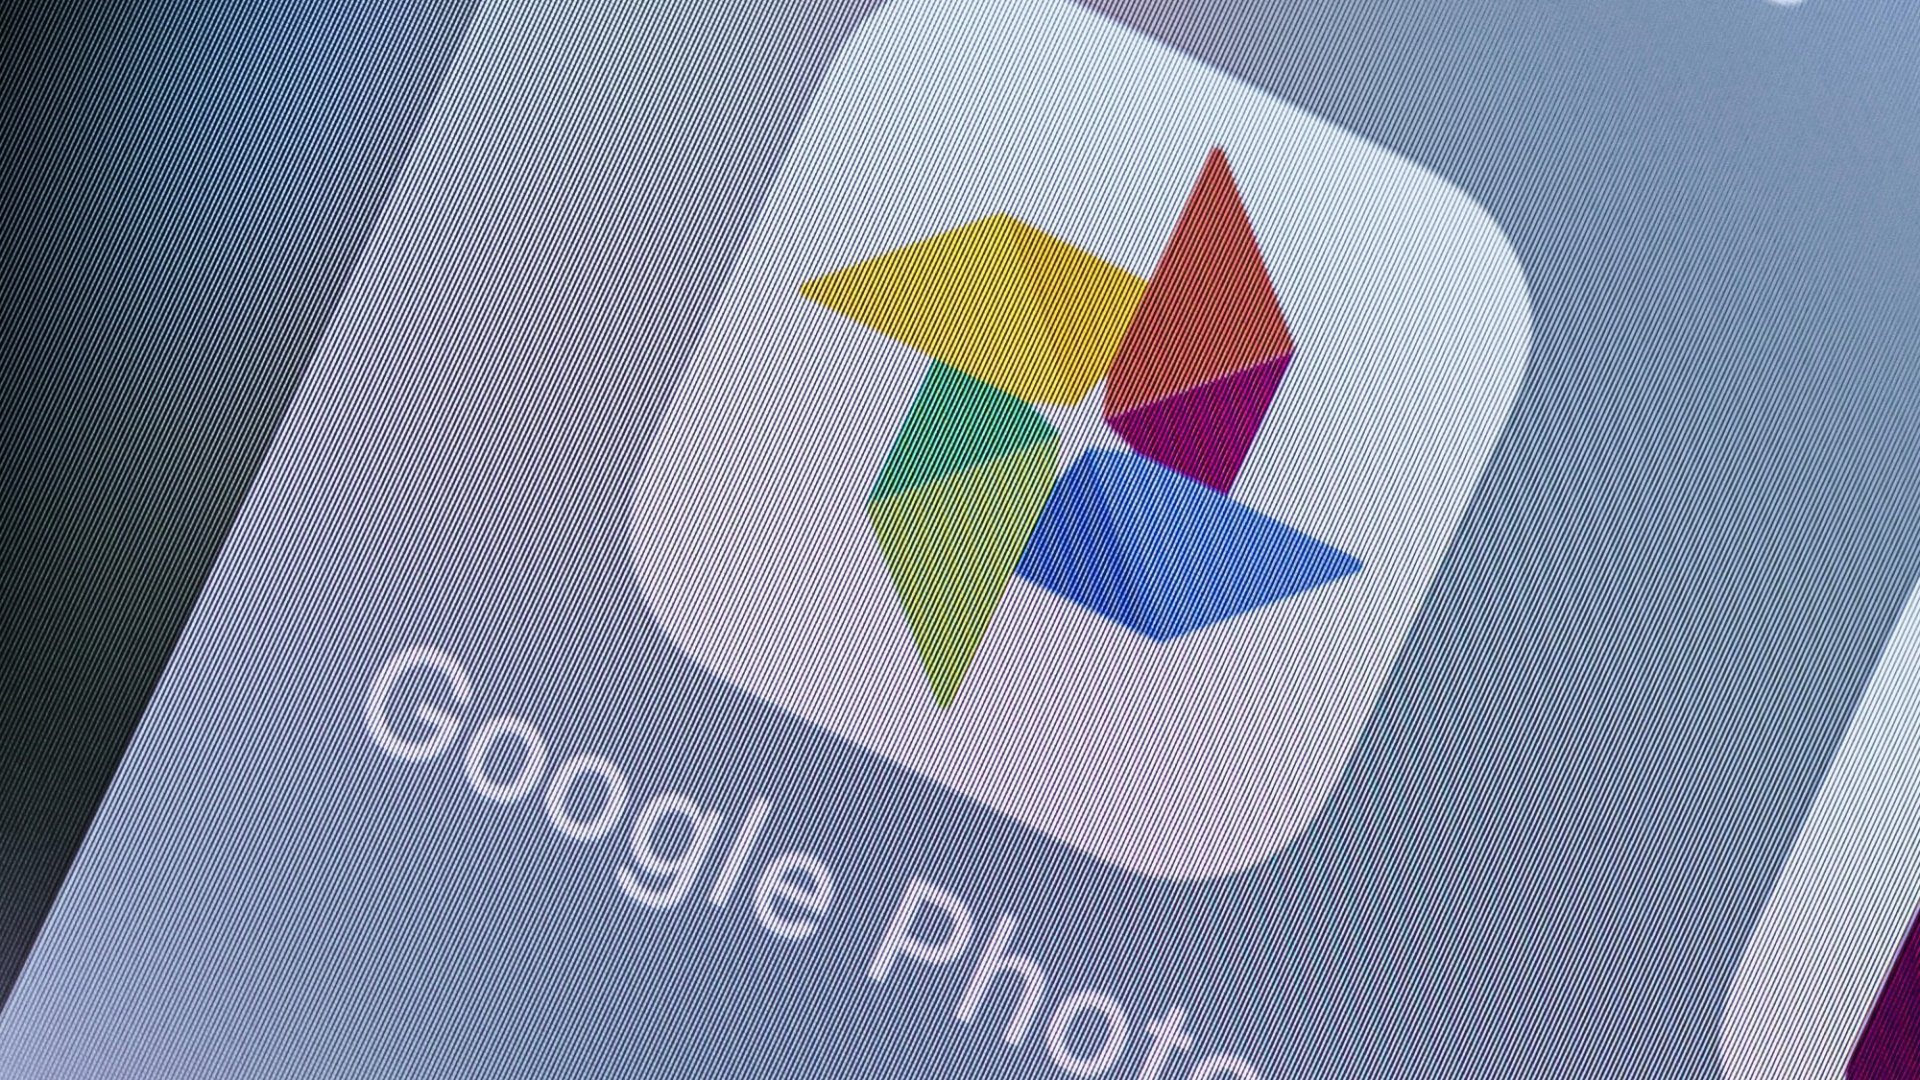 Google Is Reading the Text in Your Photos, But This Time That's a Good Thing